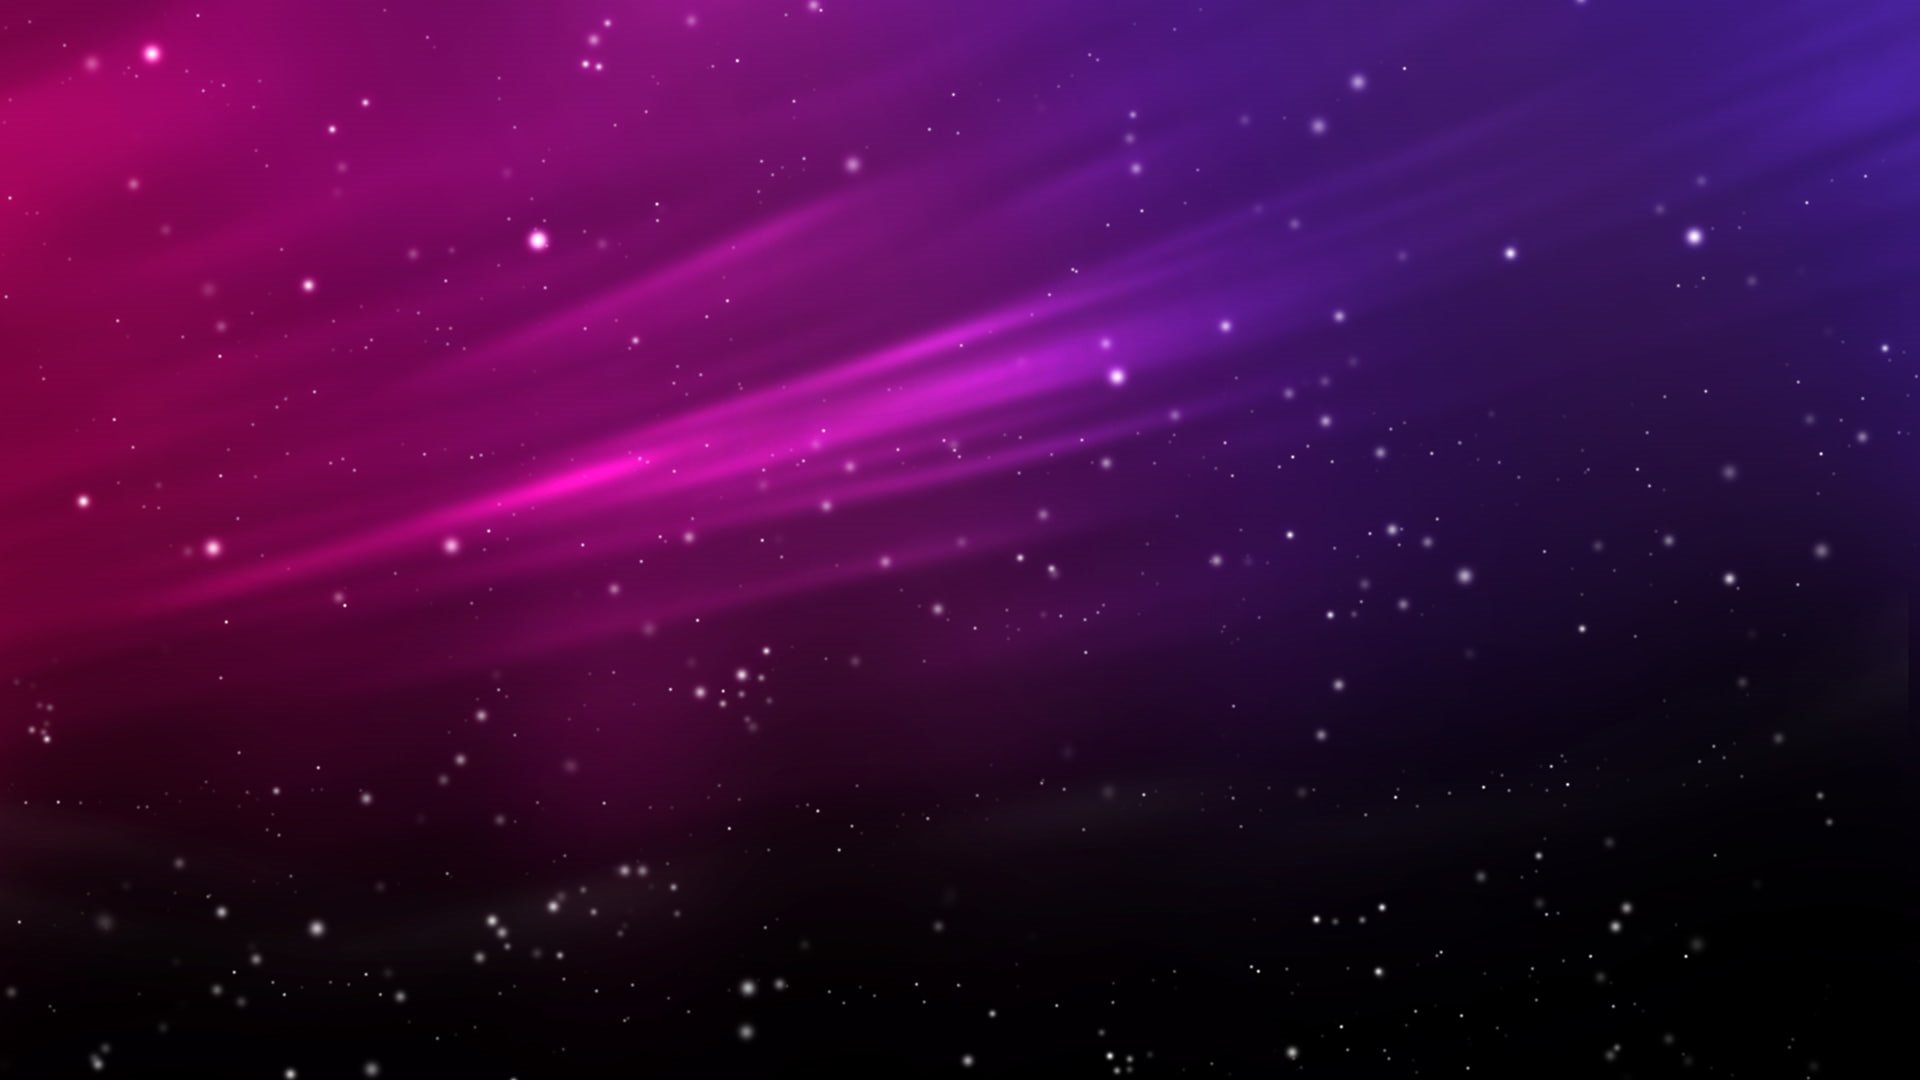 Pink Space Background HD